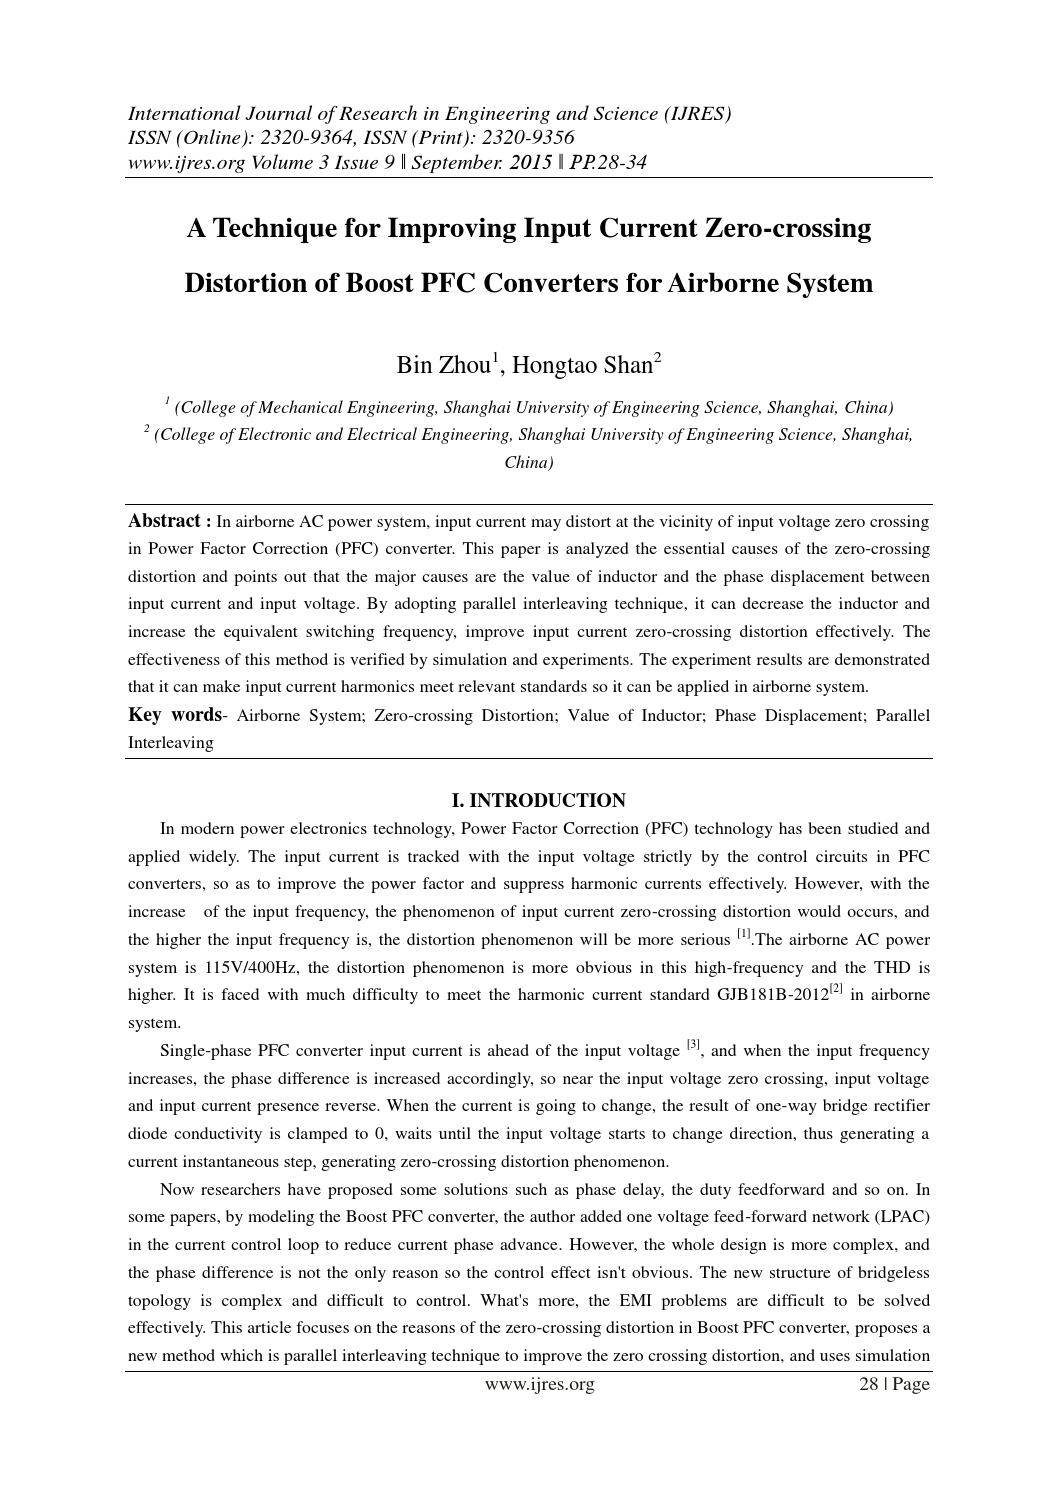 A Technique For Improving Input Current Zero Crossing Distortion Of Circuit Boost Pfc Converters By Ijres Journal Issuu